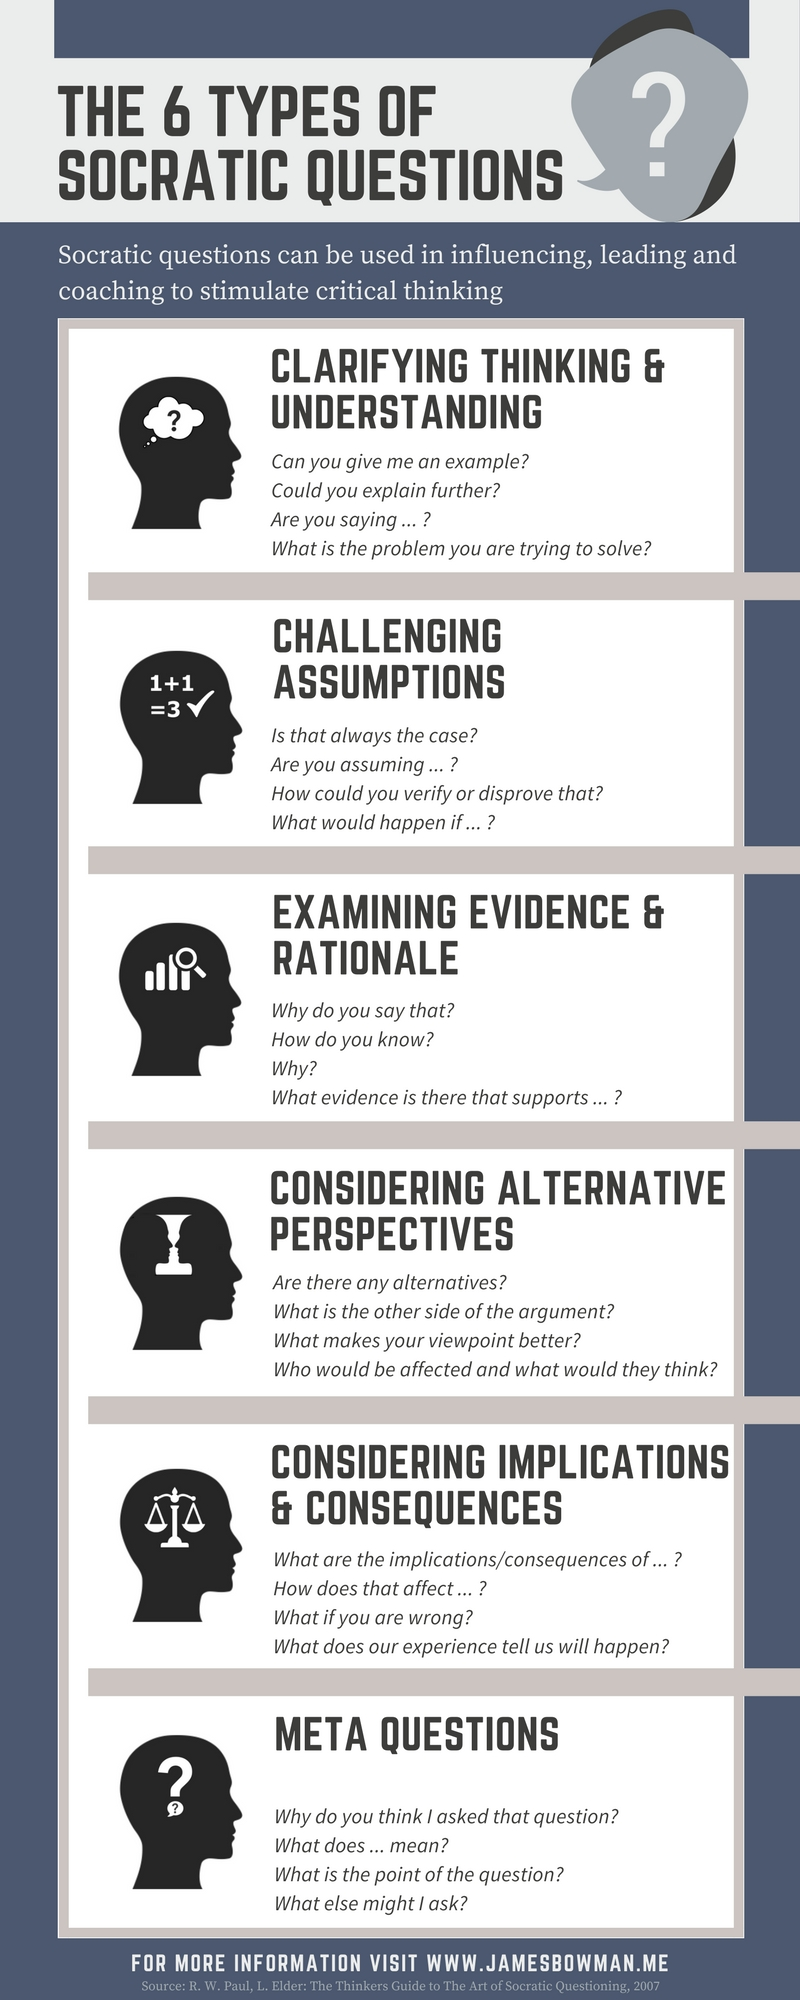 10 Unique Flight Of Ideas Thought Process infographic illustrating the 6 types of socratic question to 2020